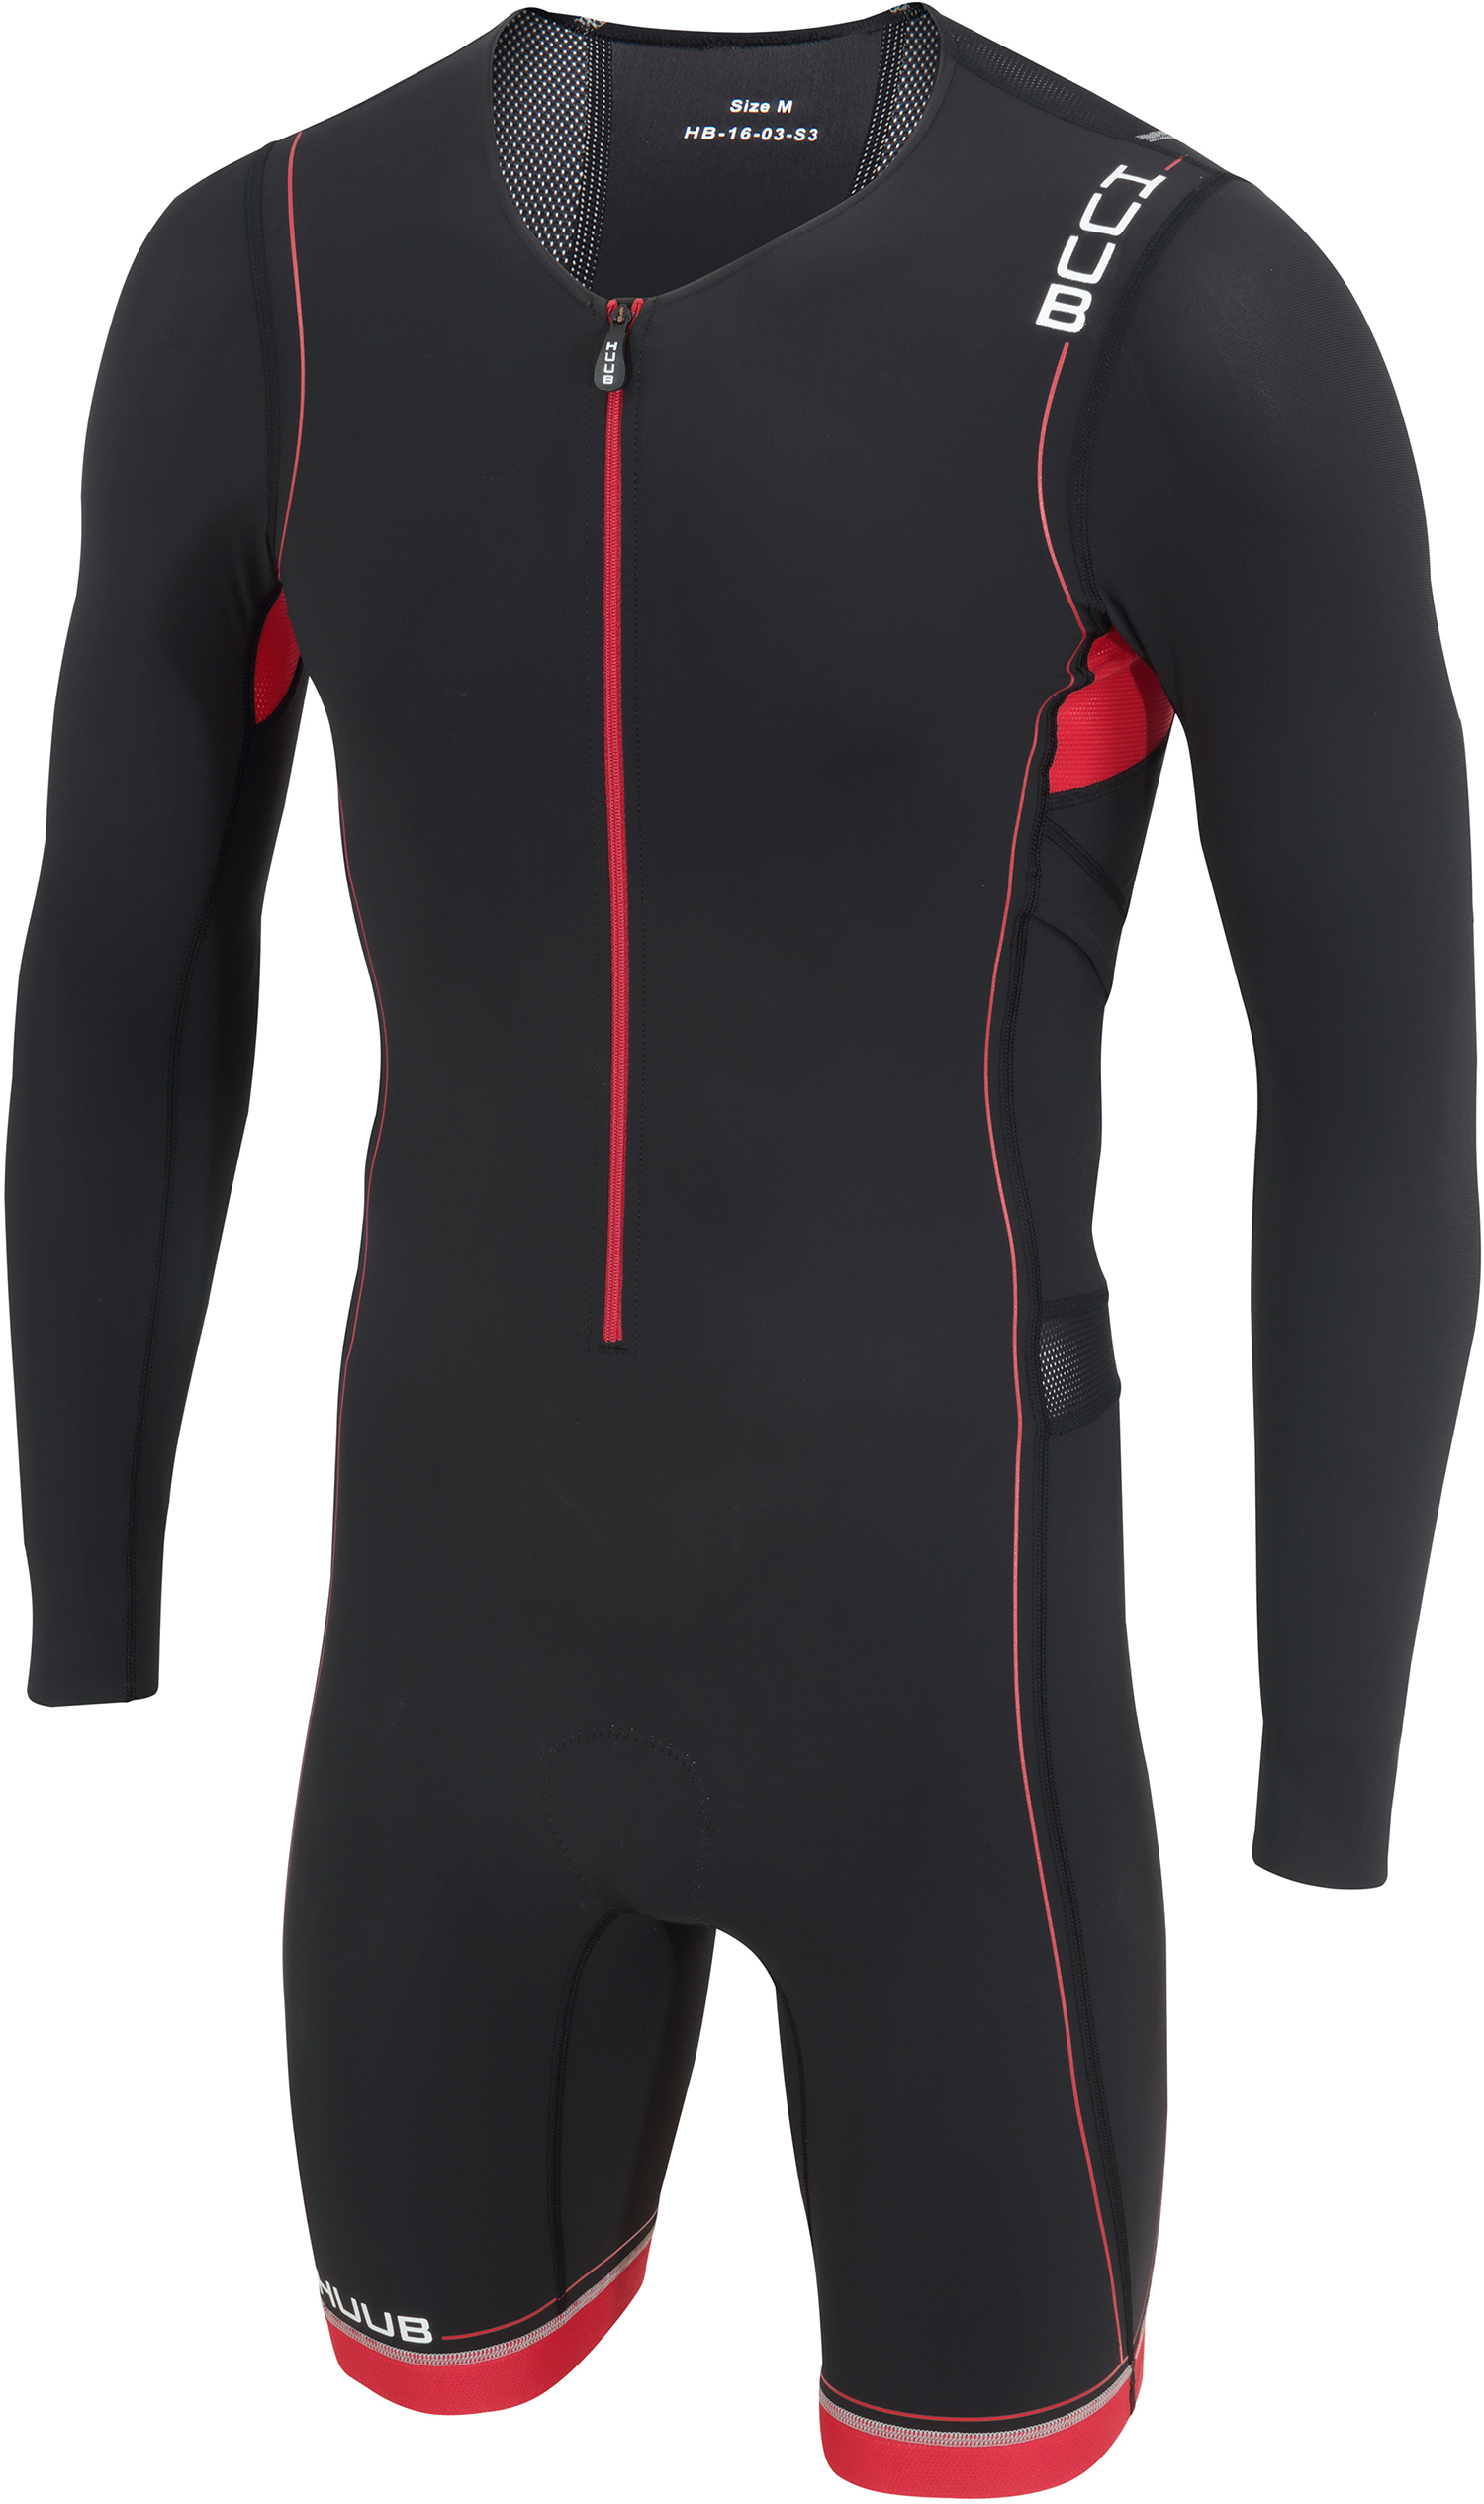 HUUB Core Full Sleeve Tri Suit | swim_clothes